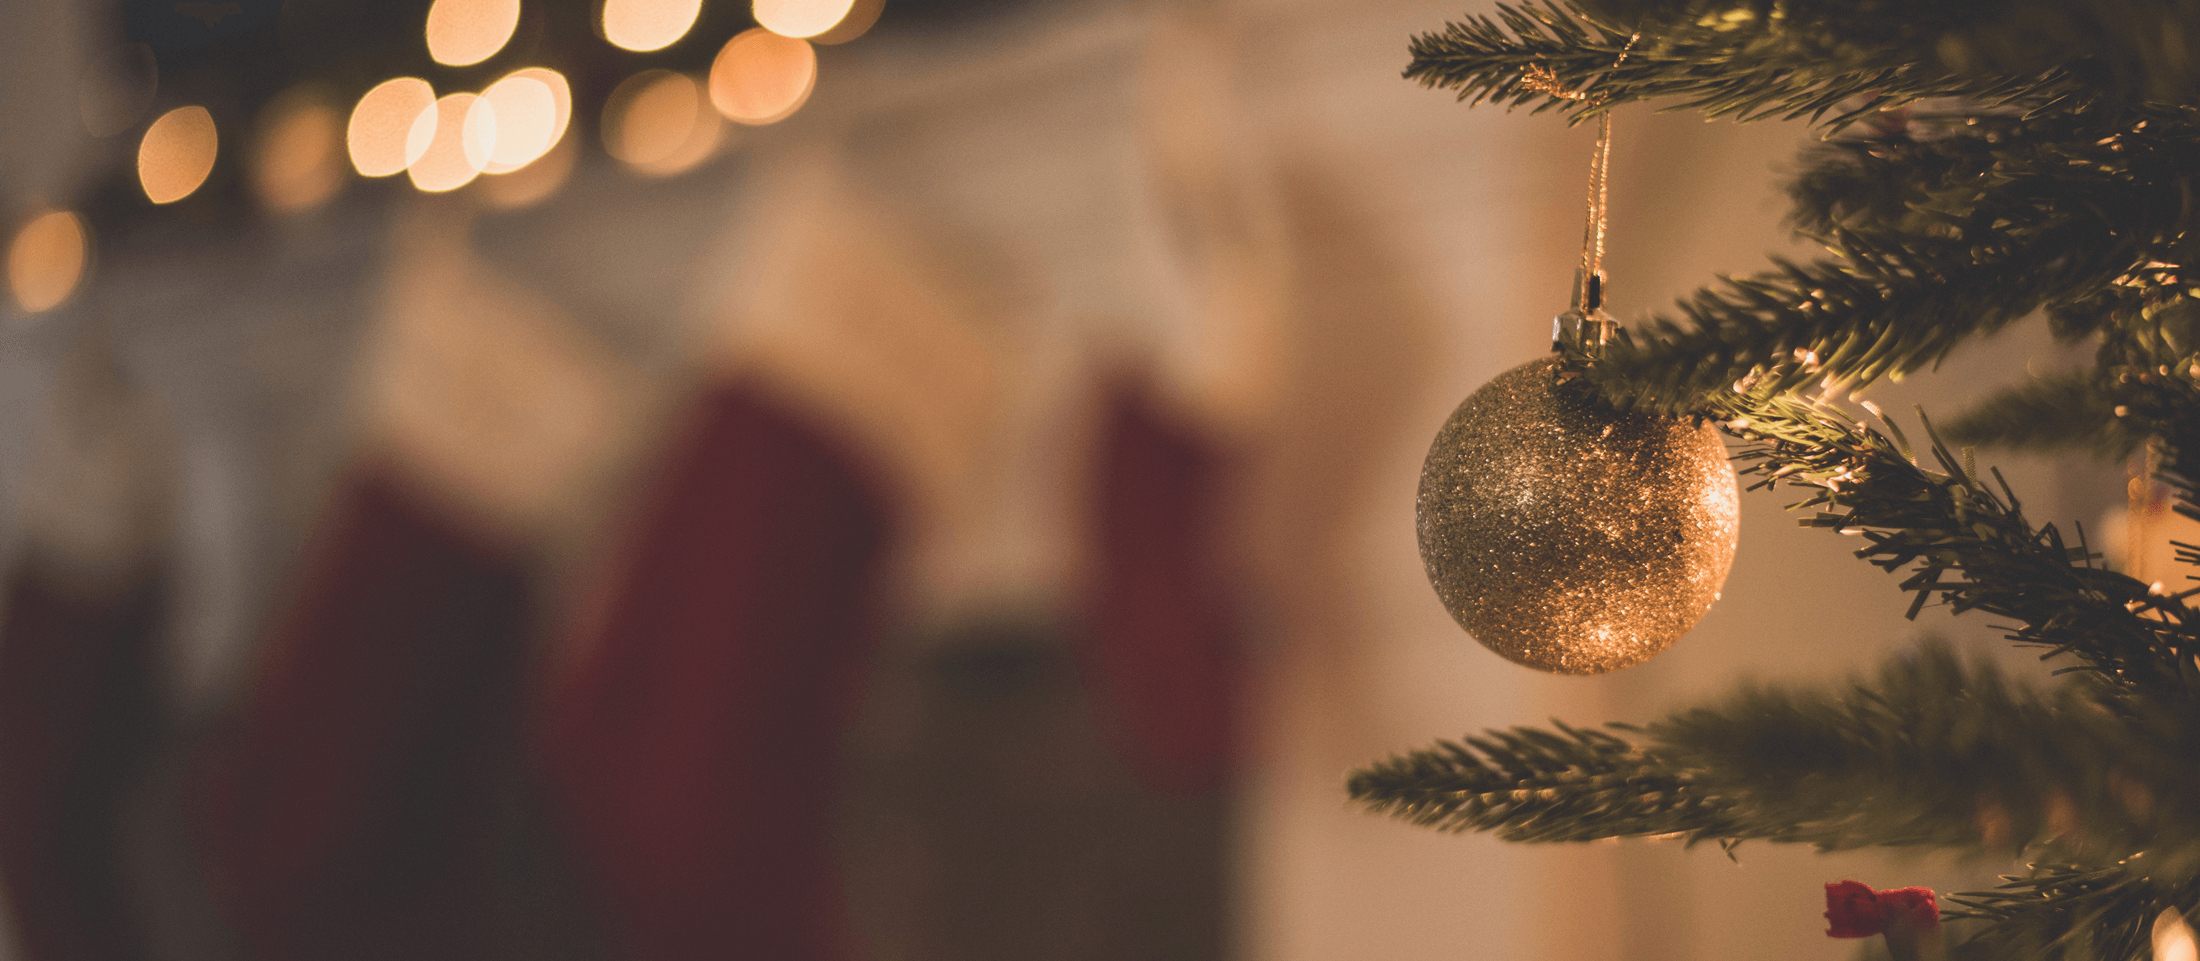 A Messianic Jew Reflects on Christmas | Ask Dr. Brown